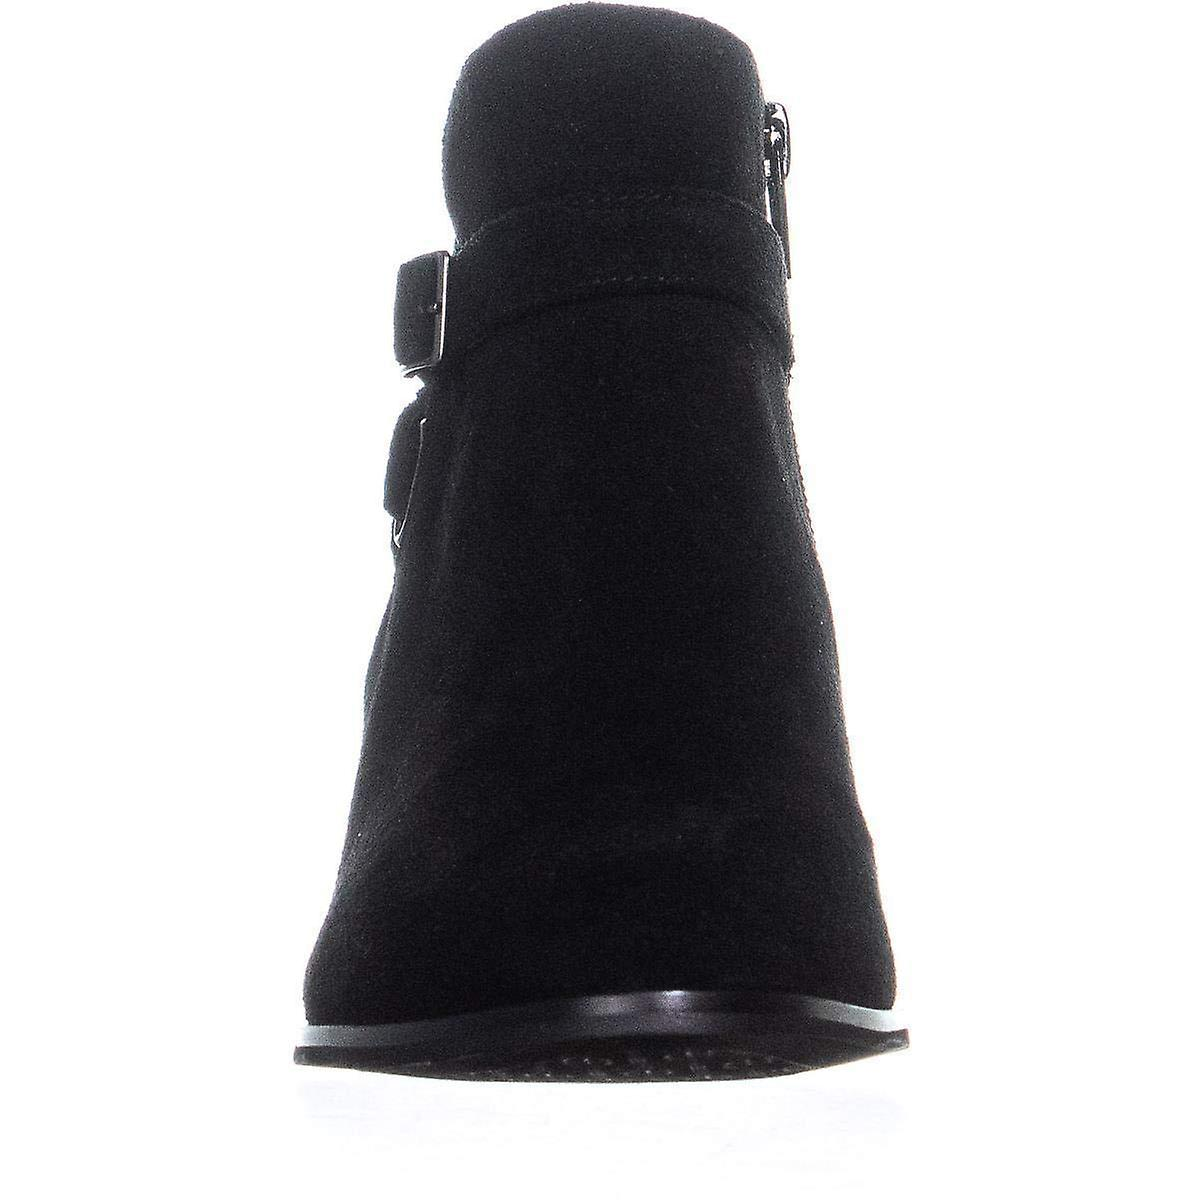 Giani Bernini GB35 Doriil Buckle Ankle Boots, Black Suede 4bl1q